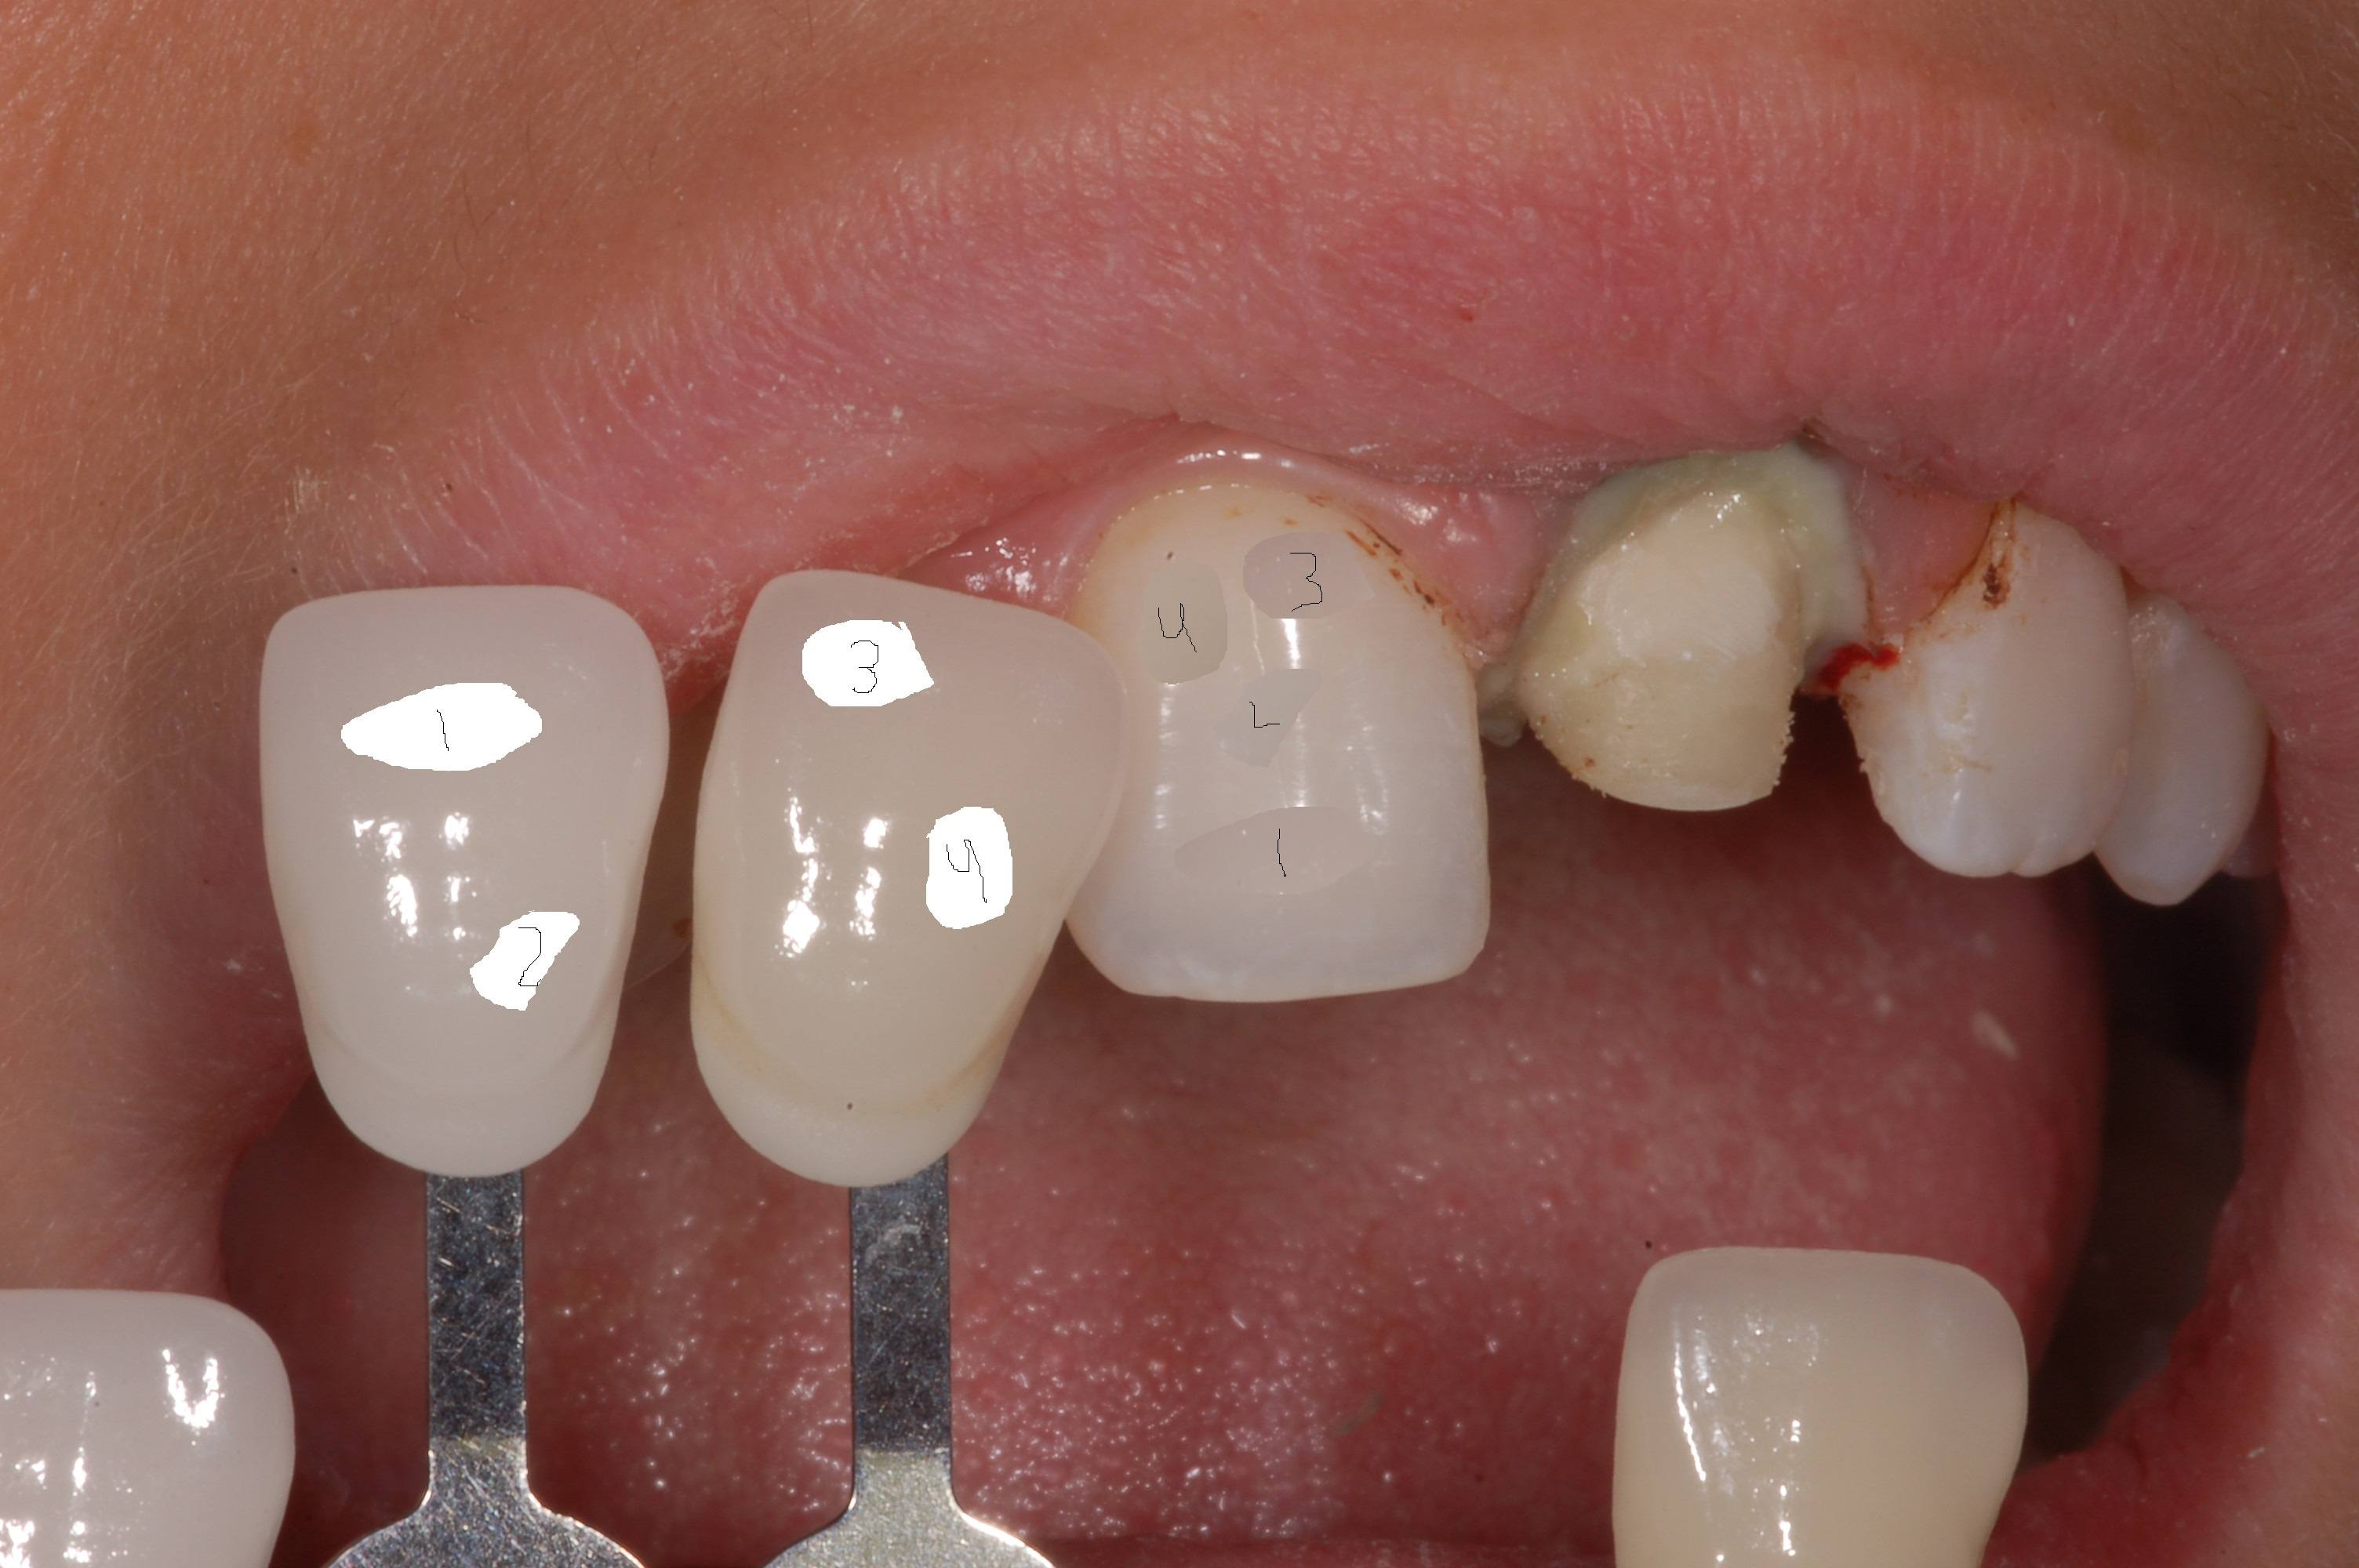 image about Tooth Shade Chart Printable referred to as Dental coloration conclusion - How toward decide on the instantly coloration